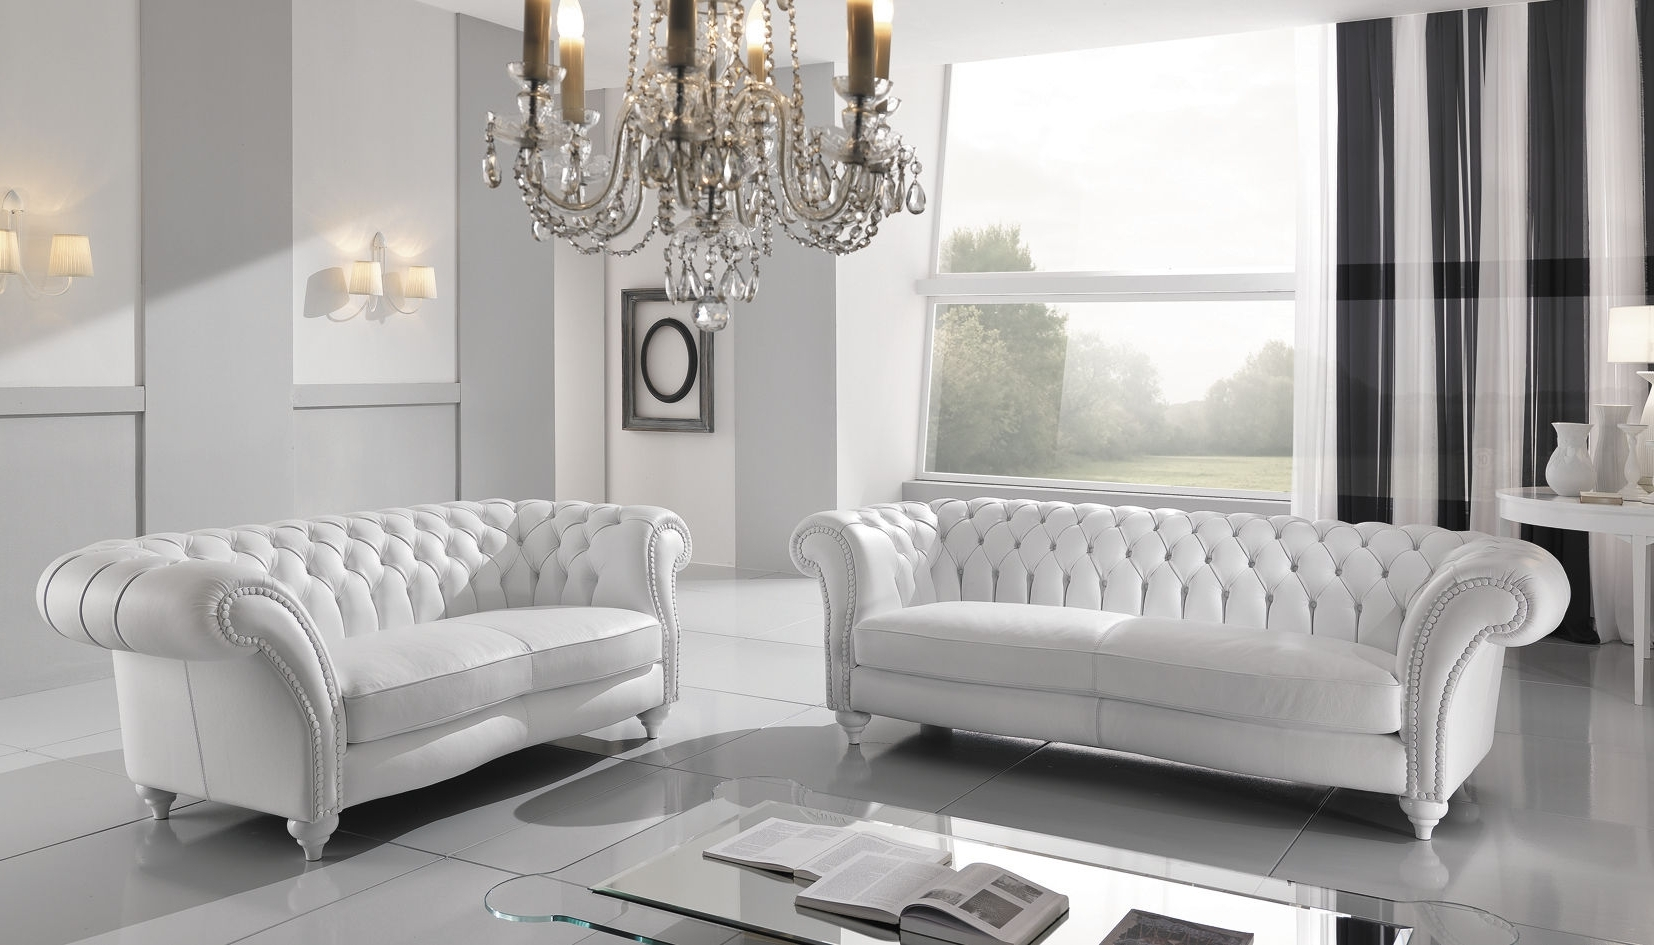 Furniture : Tufted Furniture Definition Sofa Craigslist Montreal With Trendy Grand Rapids Mi Sectional Sofas (View 4 of 20)